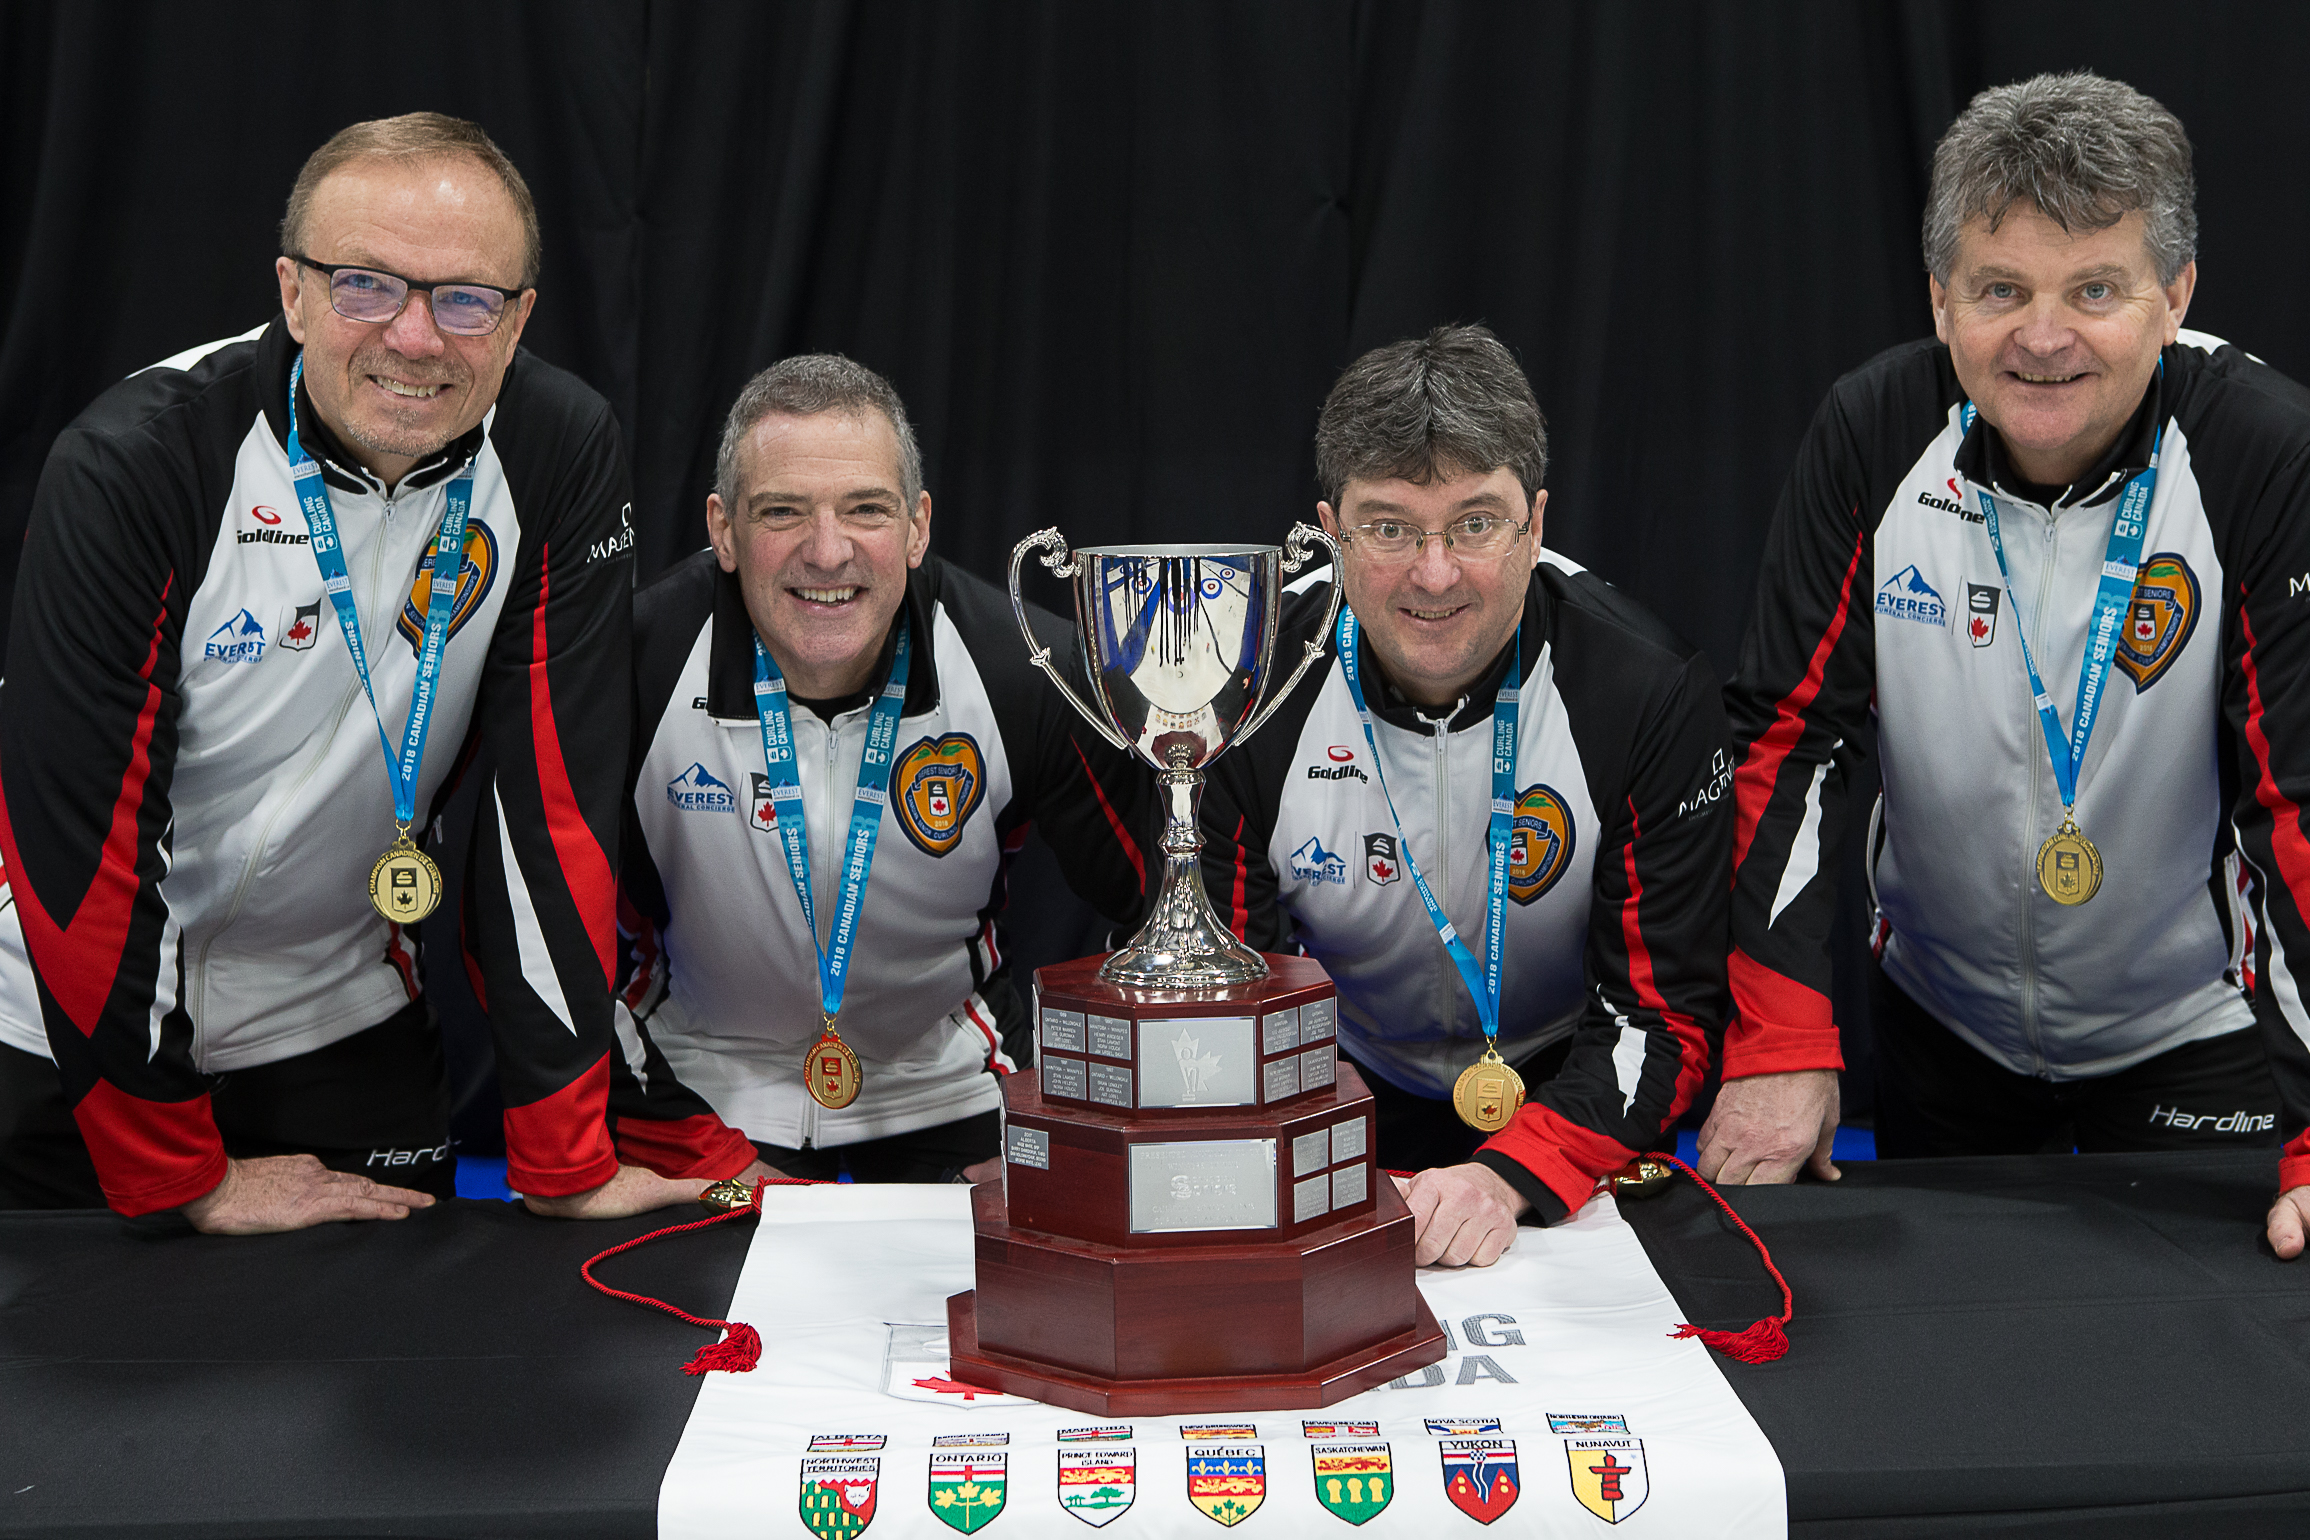 Photo via Curling Canada